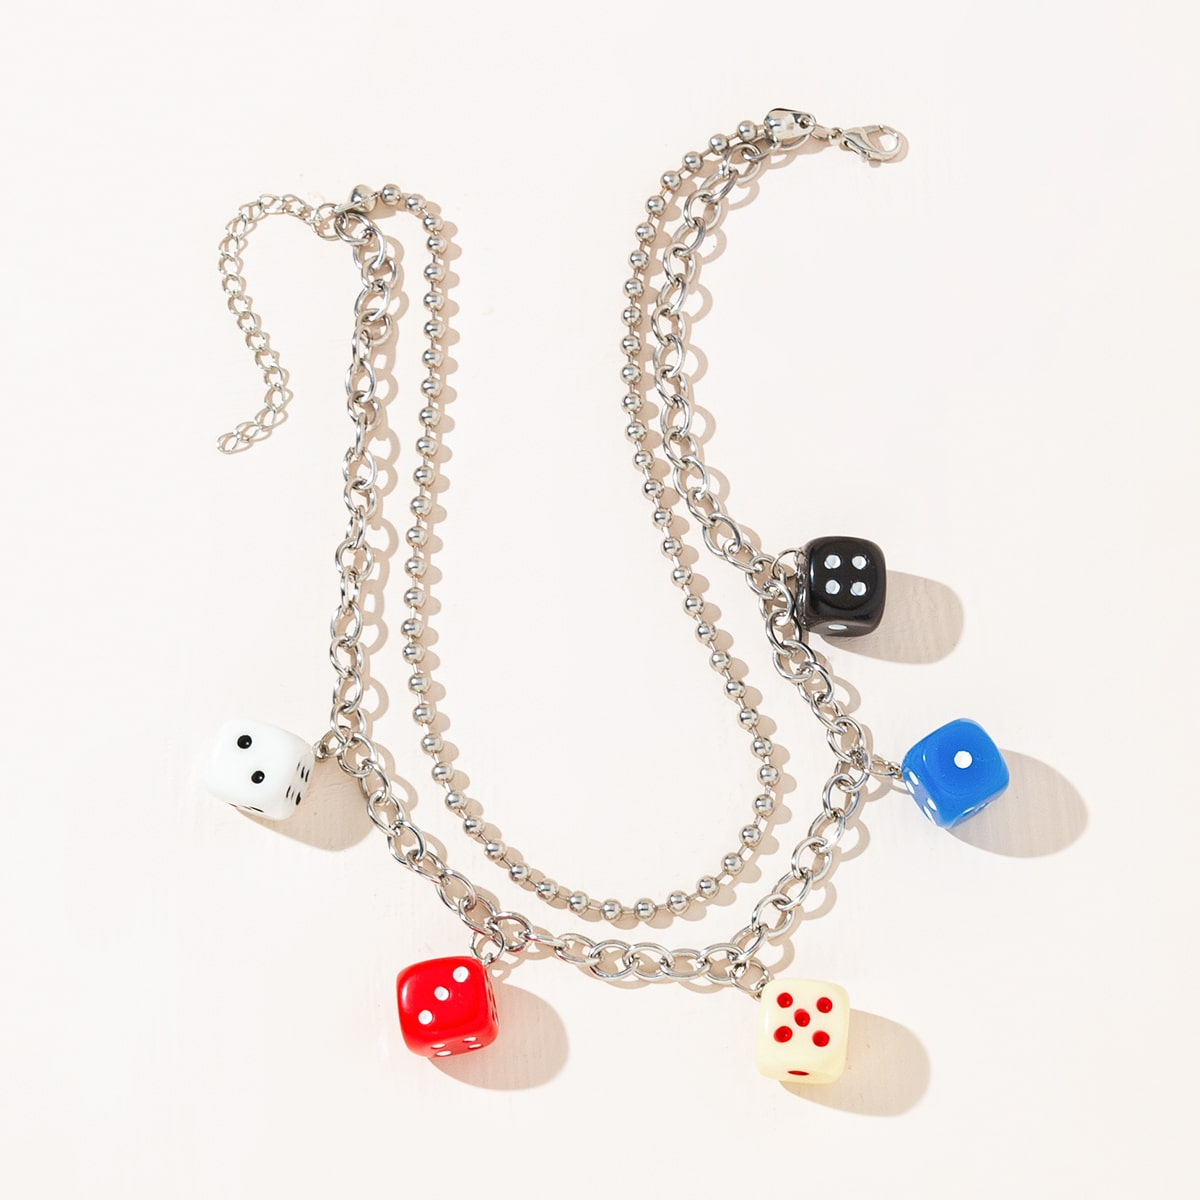 Dice Charm Layered Necklace